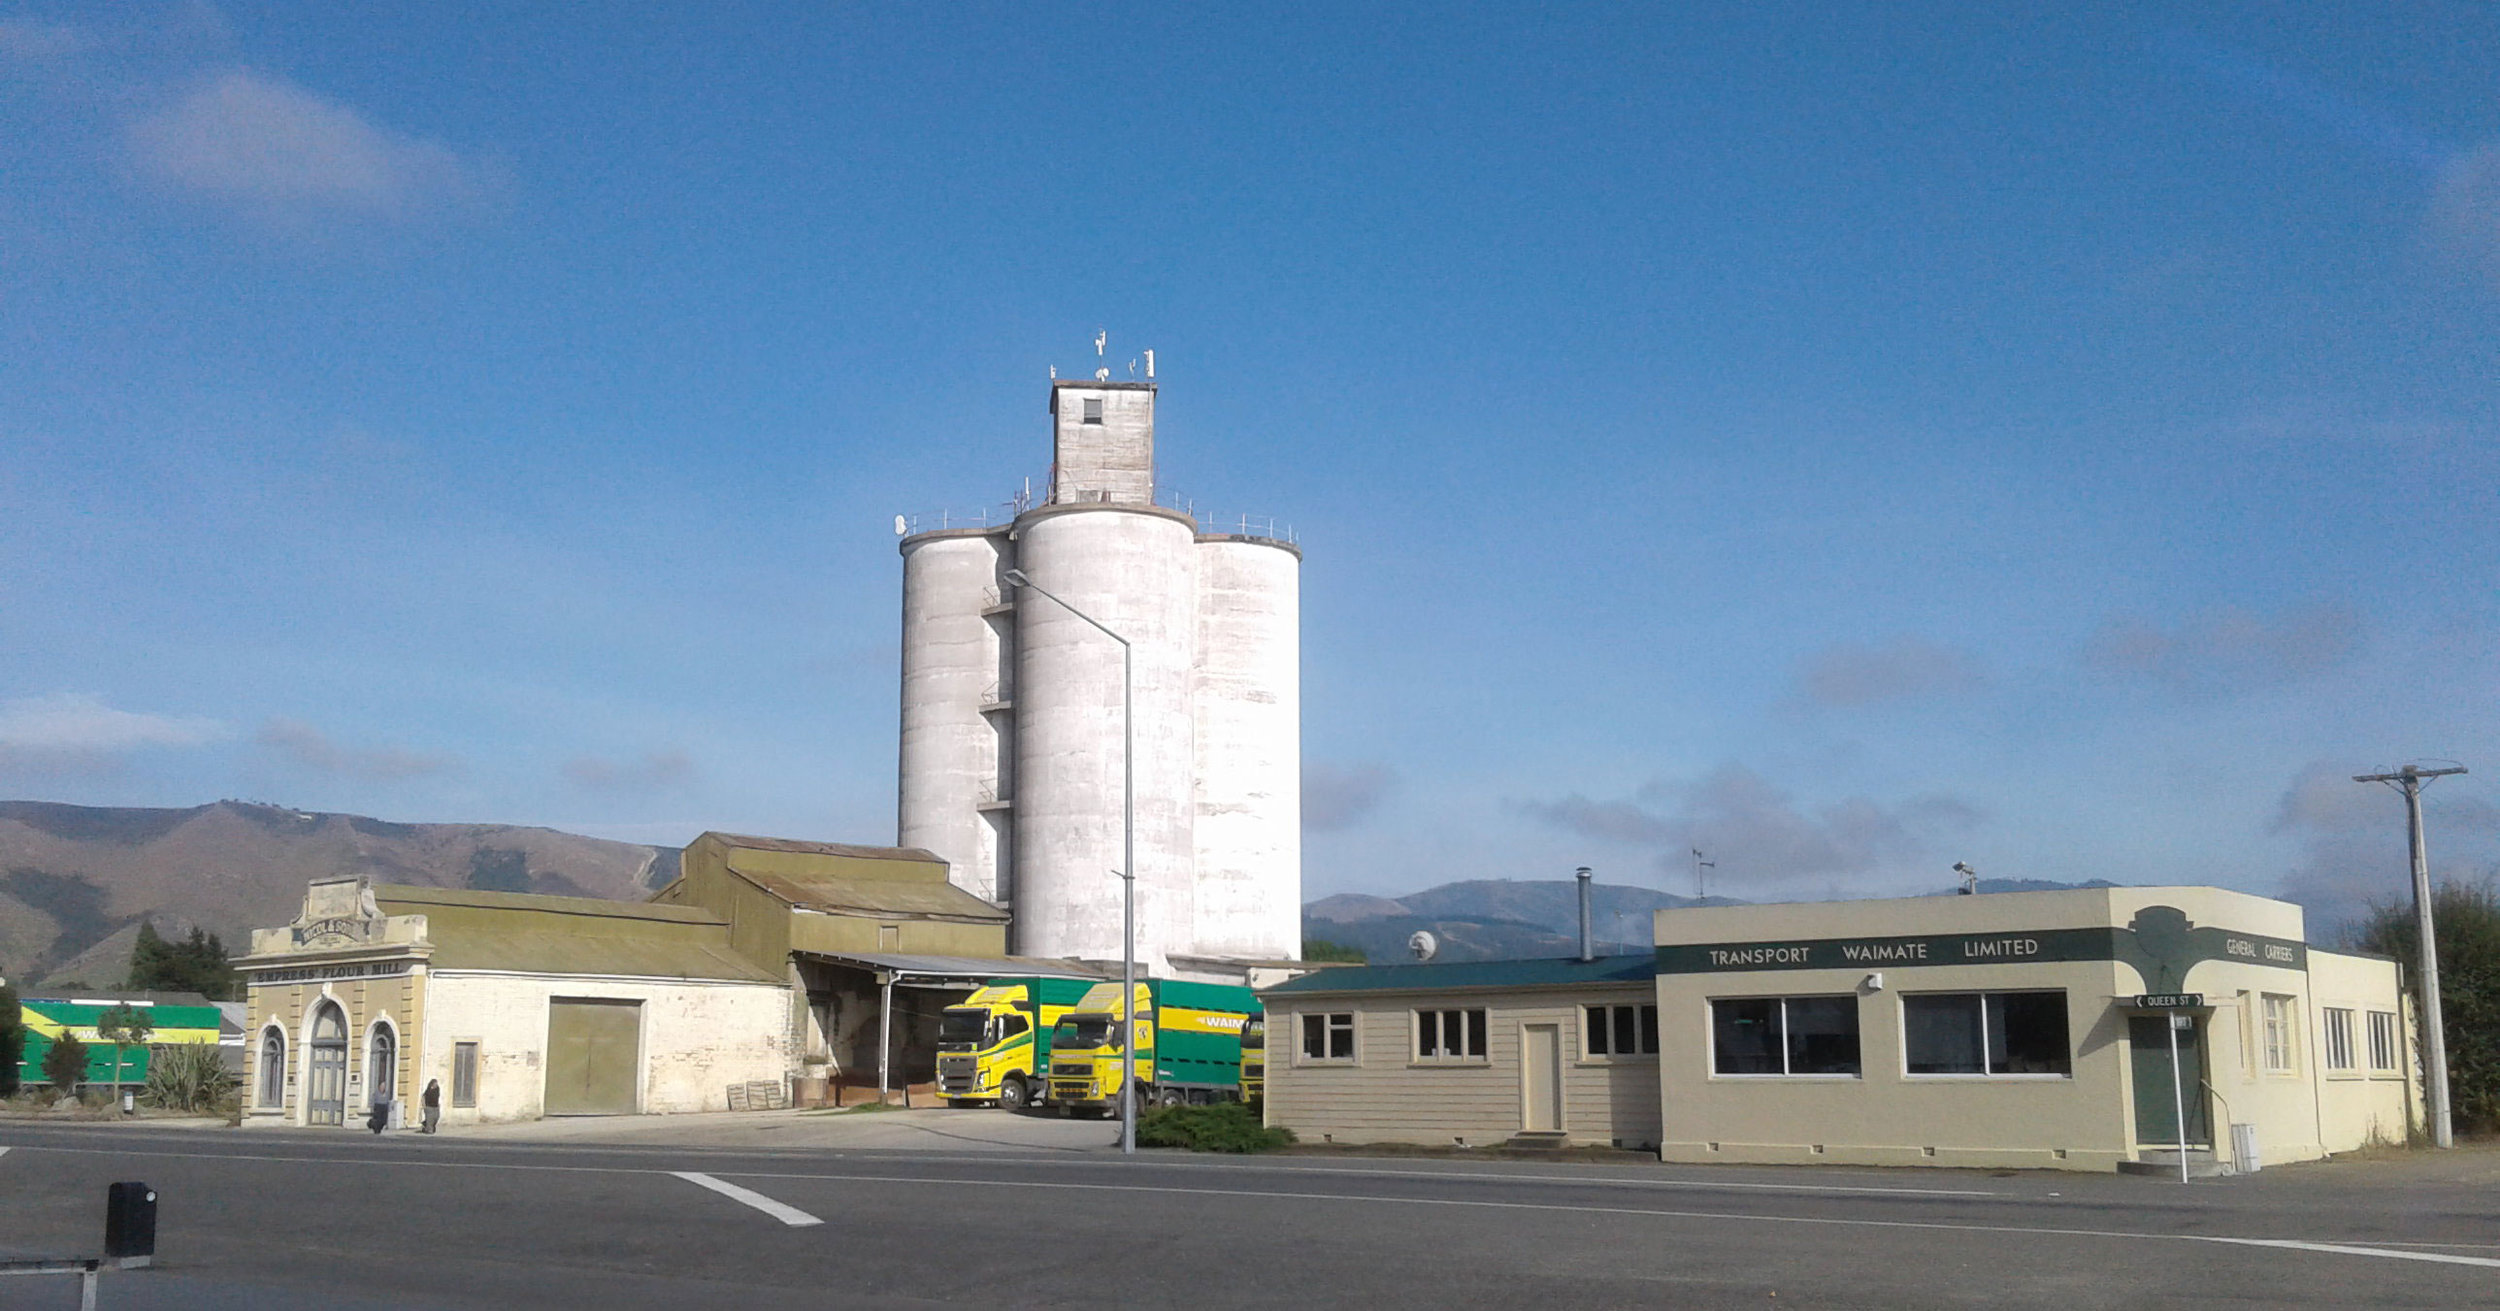 The silos, freshly cleaned and ready for paint, behind the art deco offices of Transport Waimate, Queen Street.